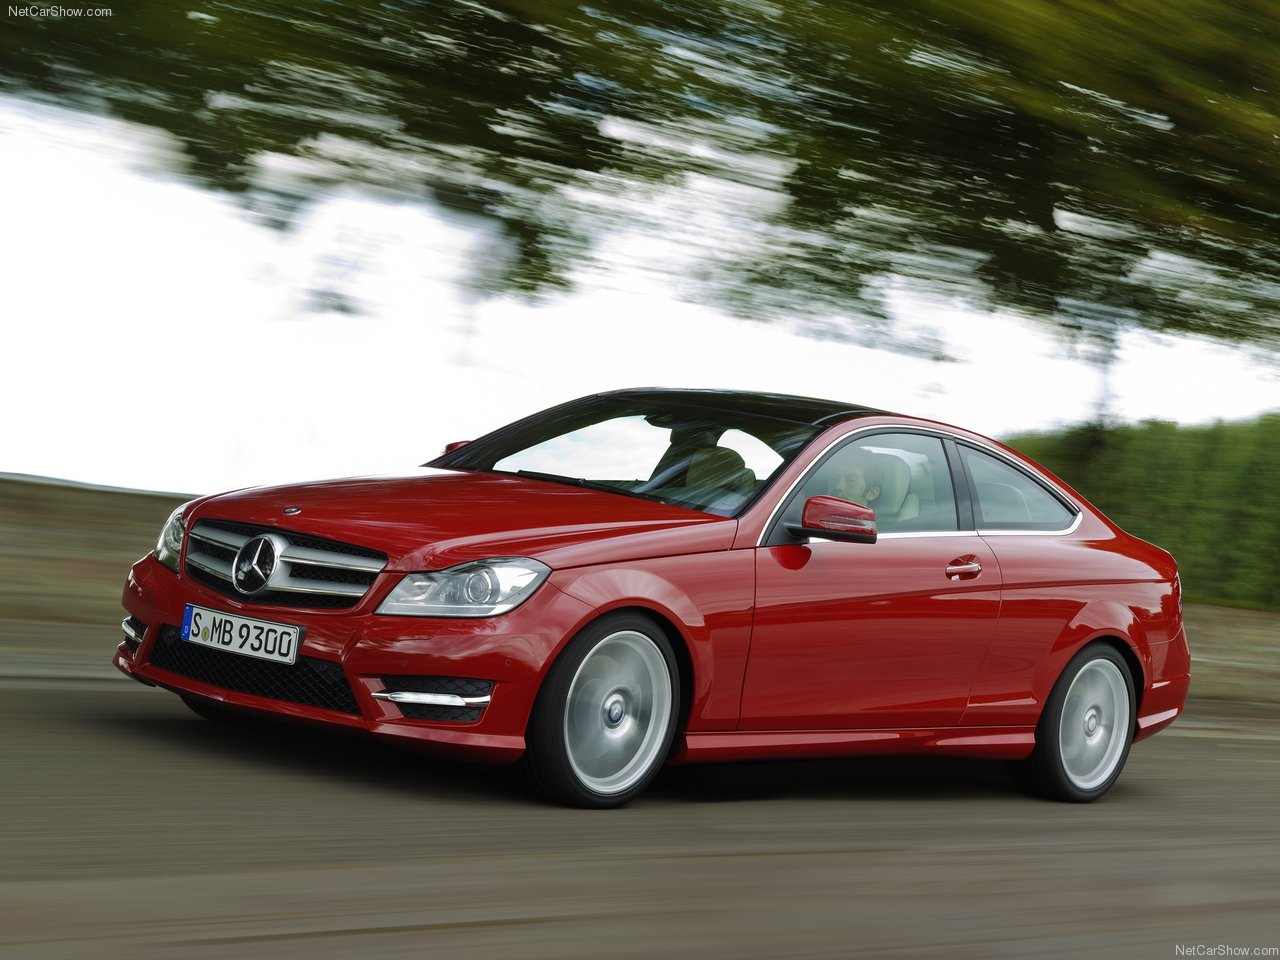 http://2.bp.blogspot.com/-h2YKzWkba6c/TV_mdsO2MhI/AAAAAAACJmQ/rO8EpAC6wM8/s1600/Mercedes-Benz-C-Class_Coupe_2012_1280x960_wallpaper_06.jpg